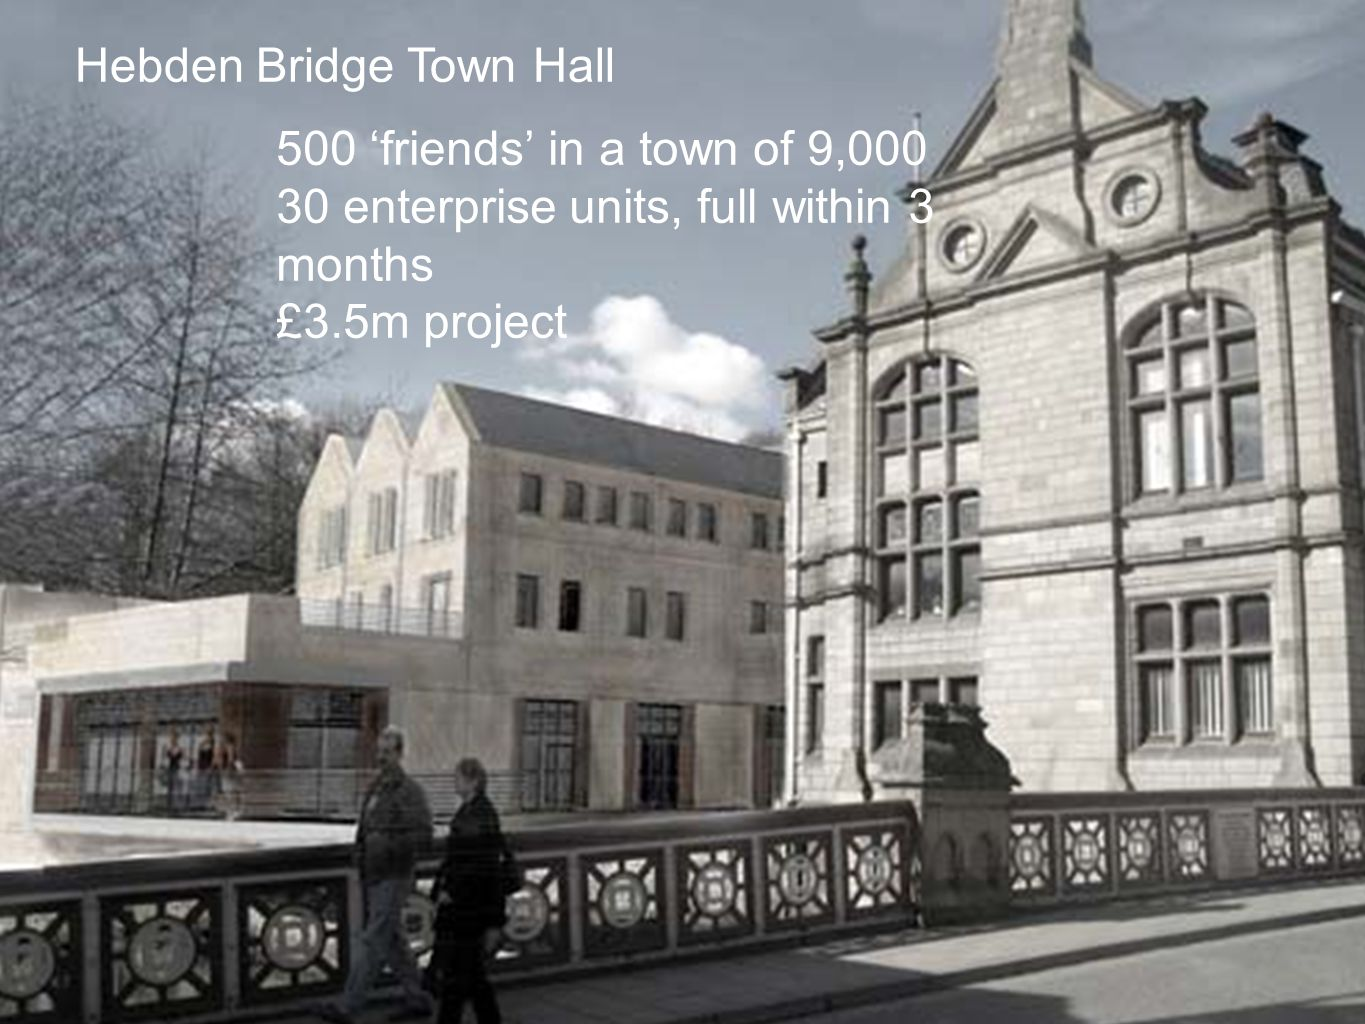 Hebden Bridge Town Hall 500 'friends' in a town of 9,000 30 enterprise units, full within 3 months £3.5m project